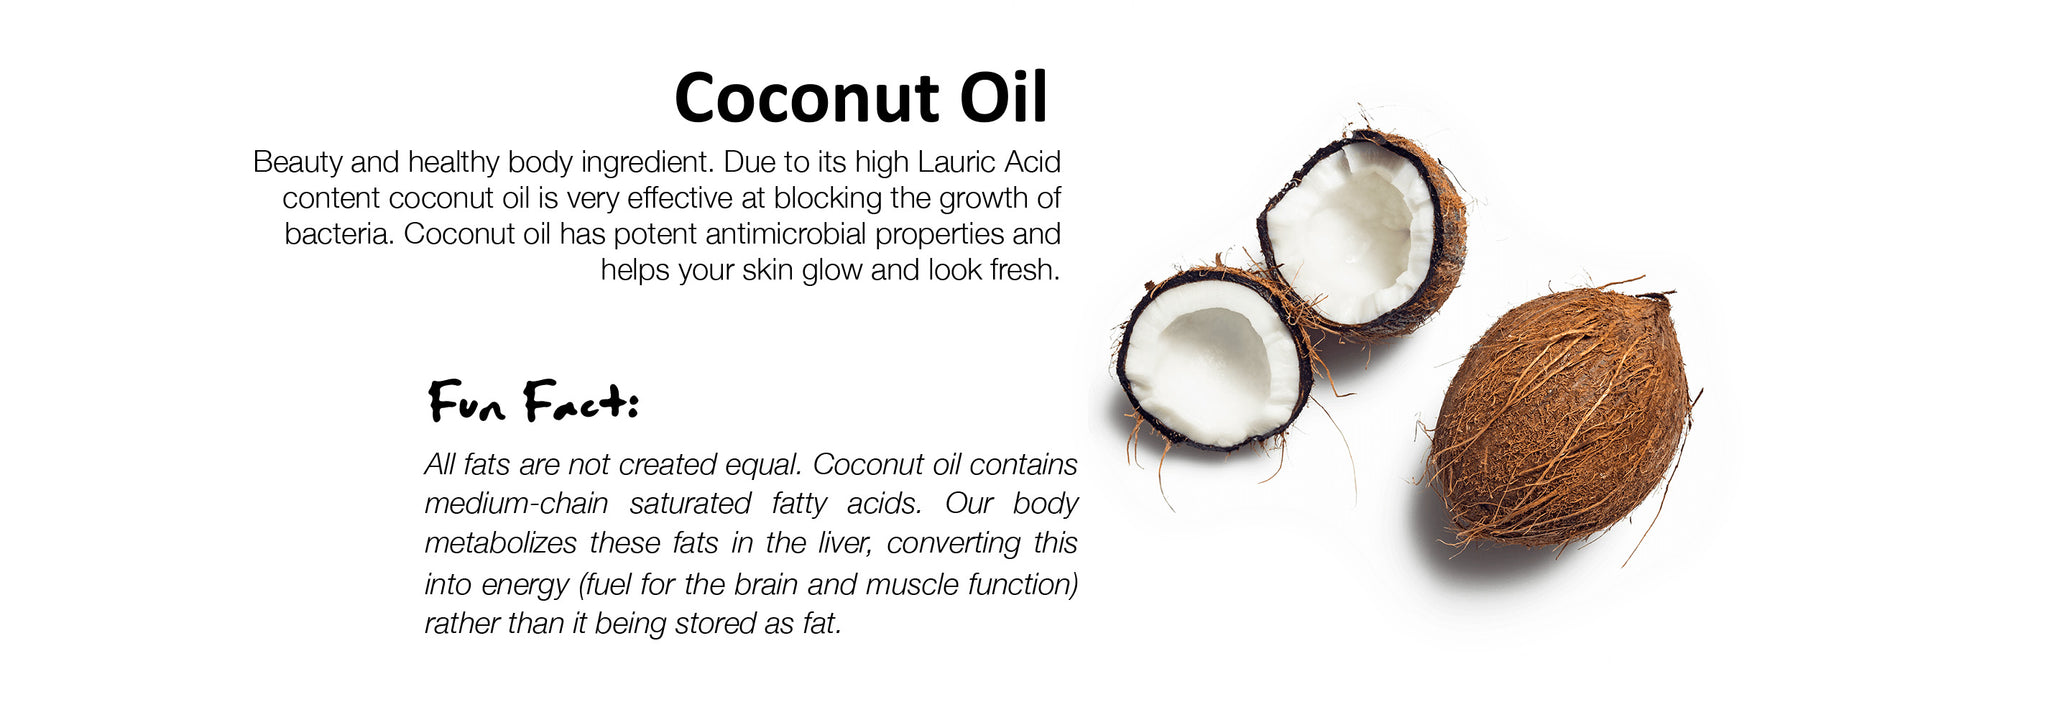 Coconut Oil Beauty and healthy body ingredient. Due to its high Lauric Acid content coconut oil is very effective at blocking the growth of bacteria. Coconut oil has potent antimicrobial properties and helps your skin glow and look fresh.